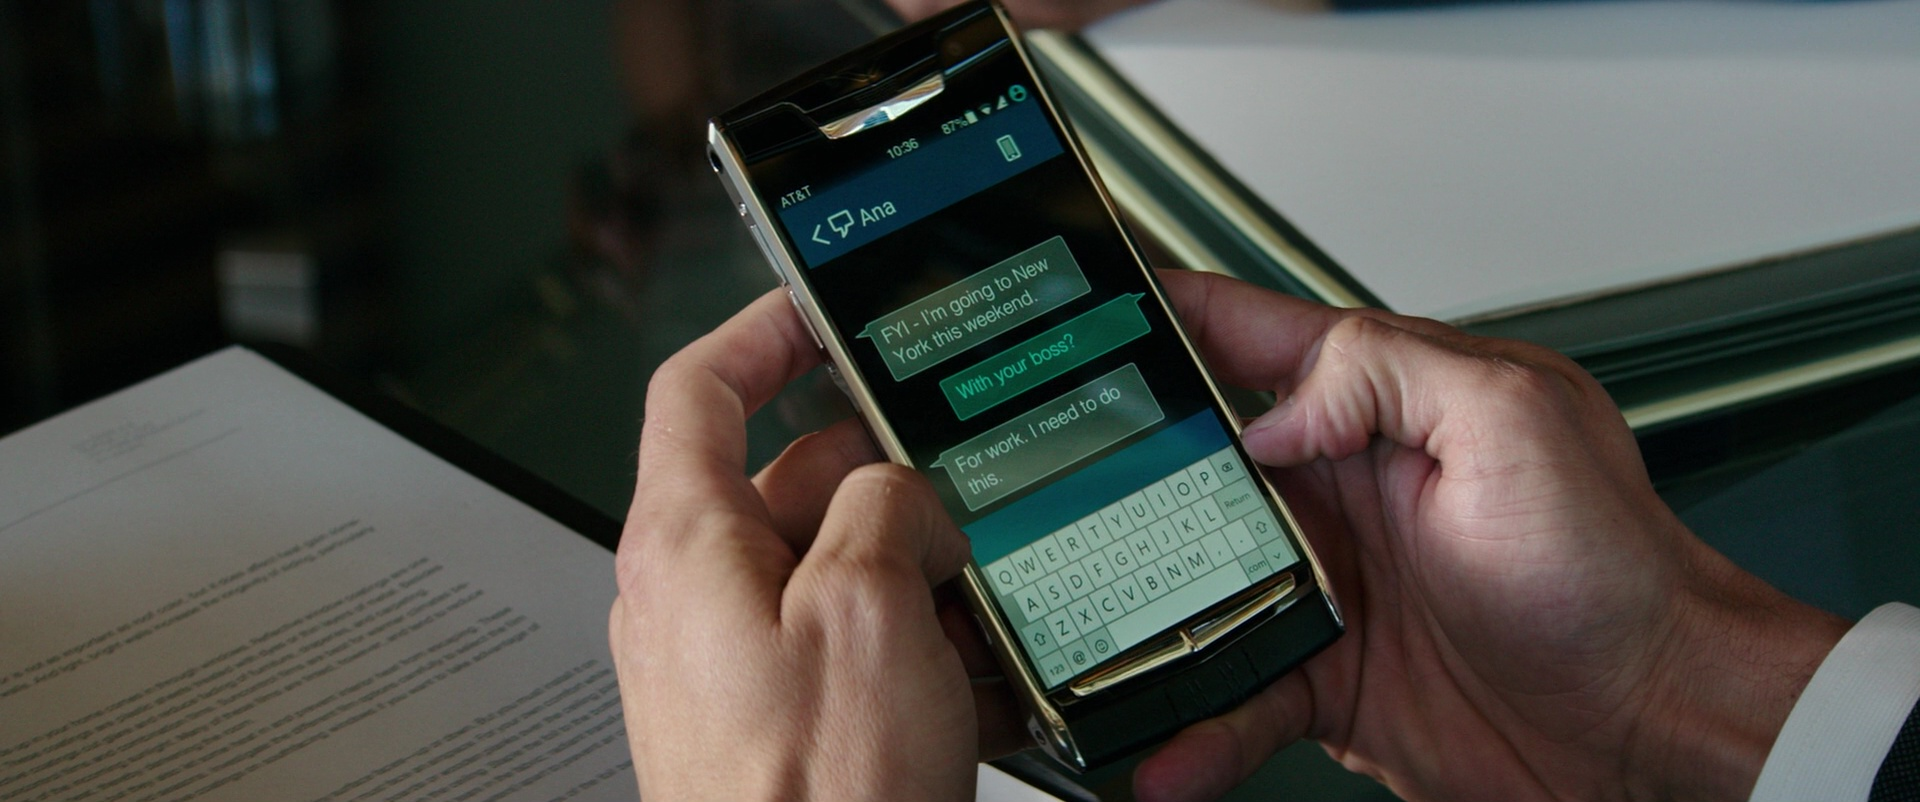 American Car Brands >> AT&T and Vertu Signature Touch Smartphone Used by Jamie Dornan in Fifty Shades Darker (2017) Movie